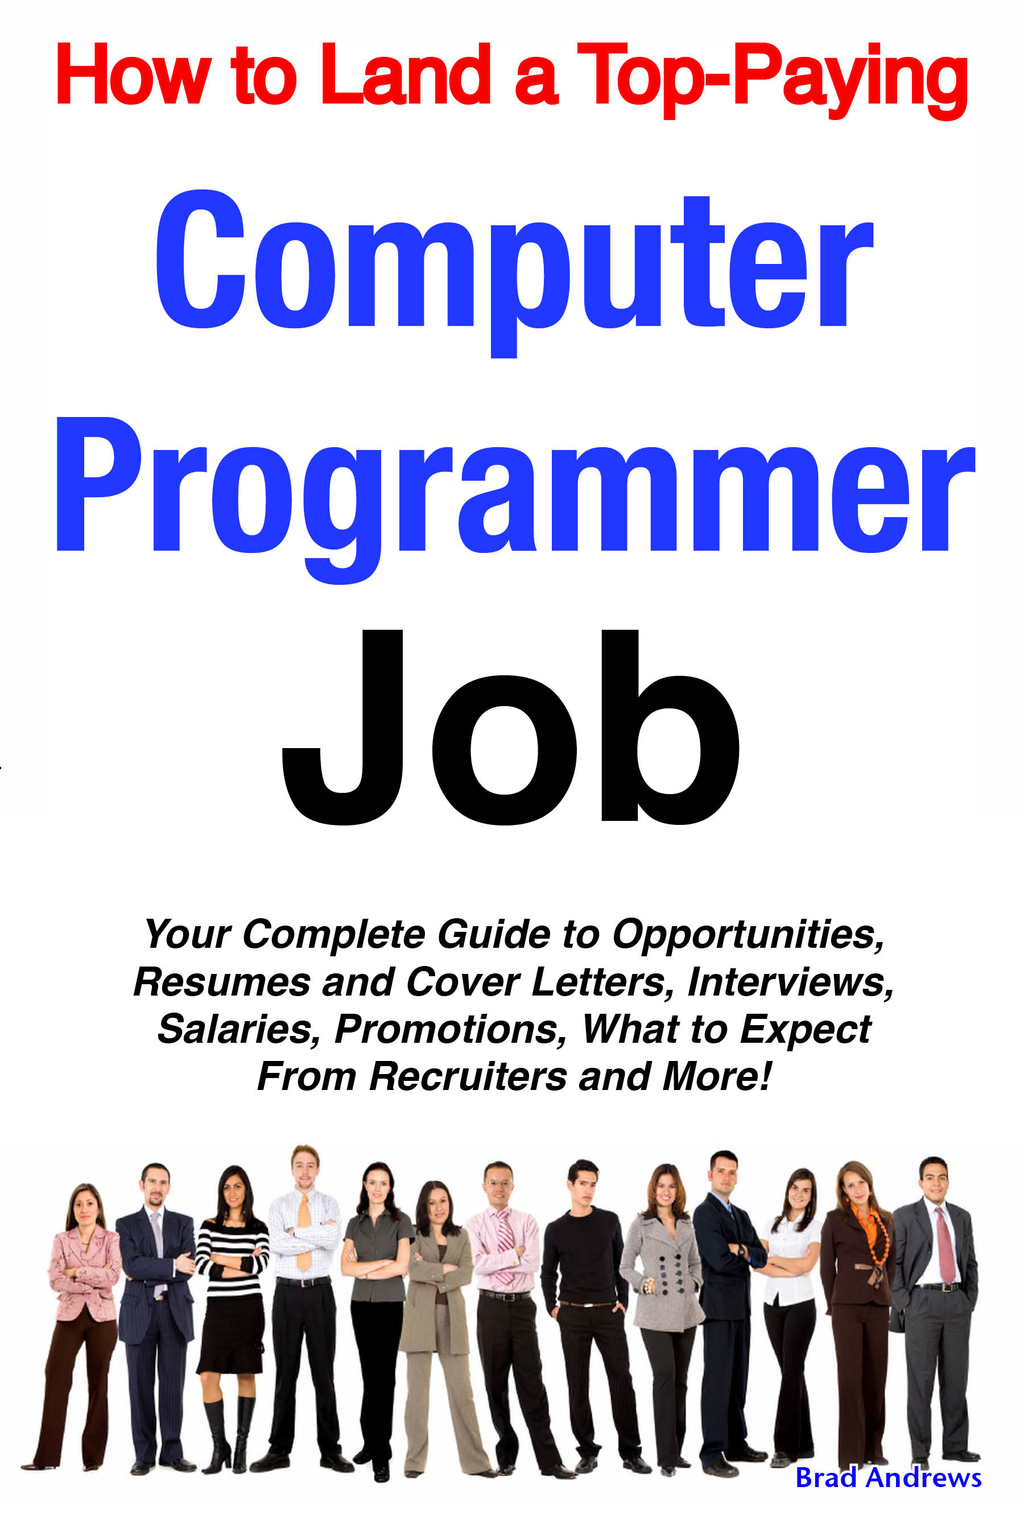 How to Land a Top-Paying Computer Programmer Job: Your Complete Guide to Opportunities, Resumes and Cover Letters, Interviews, Salaries, Promotions, What to Expect From Recruiters and More!